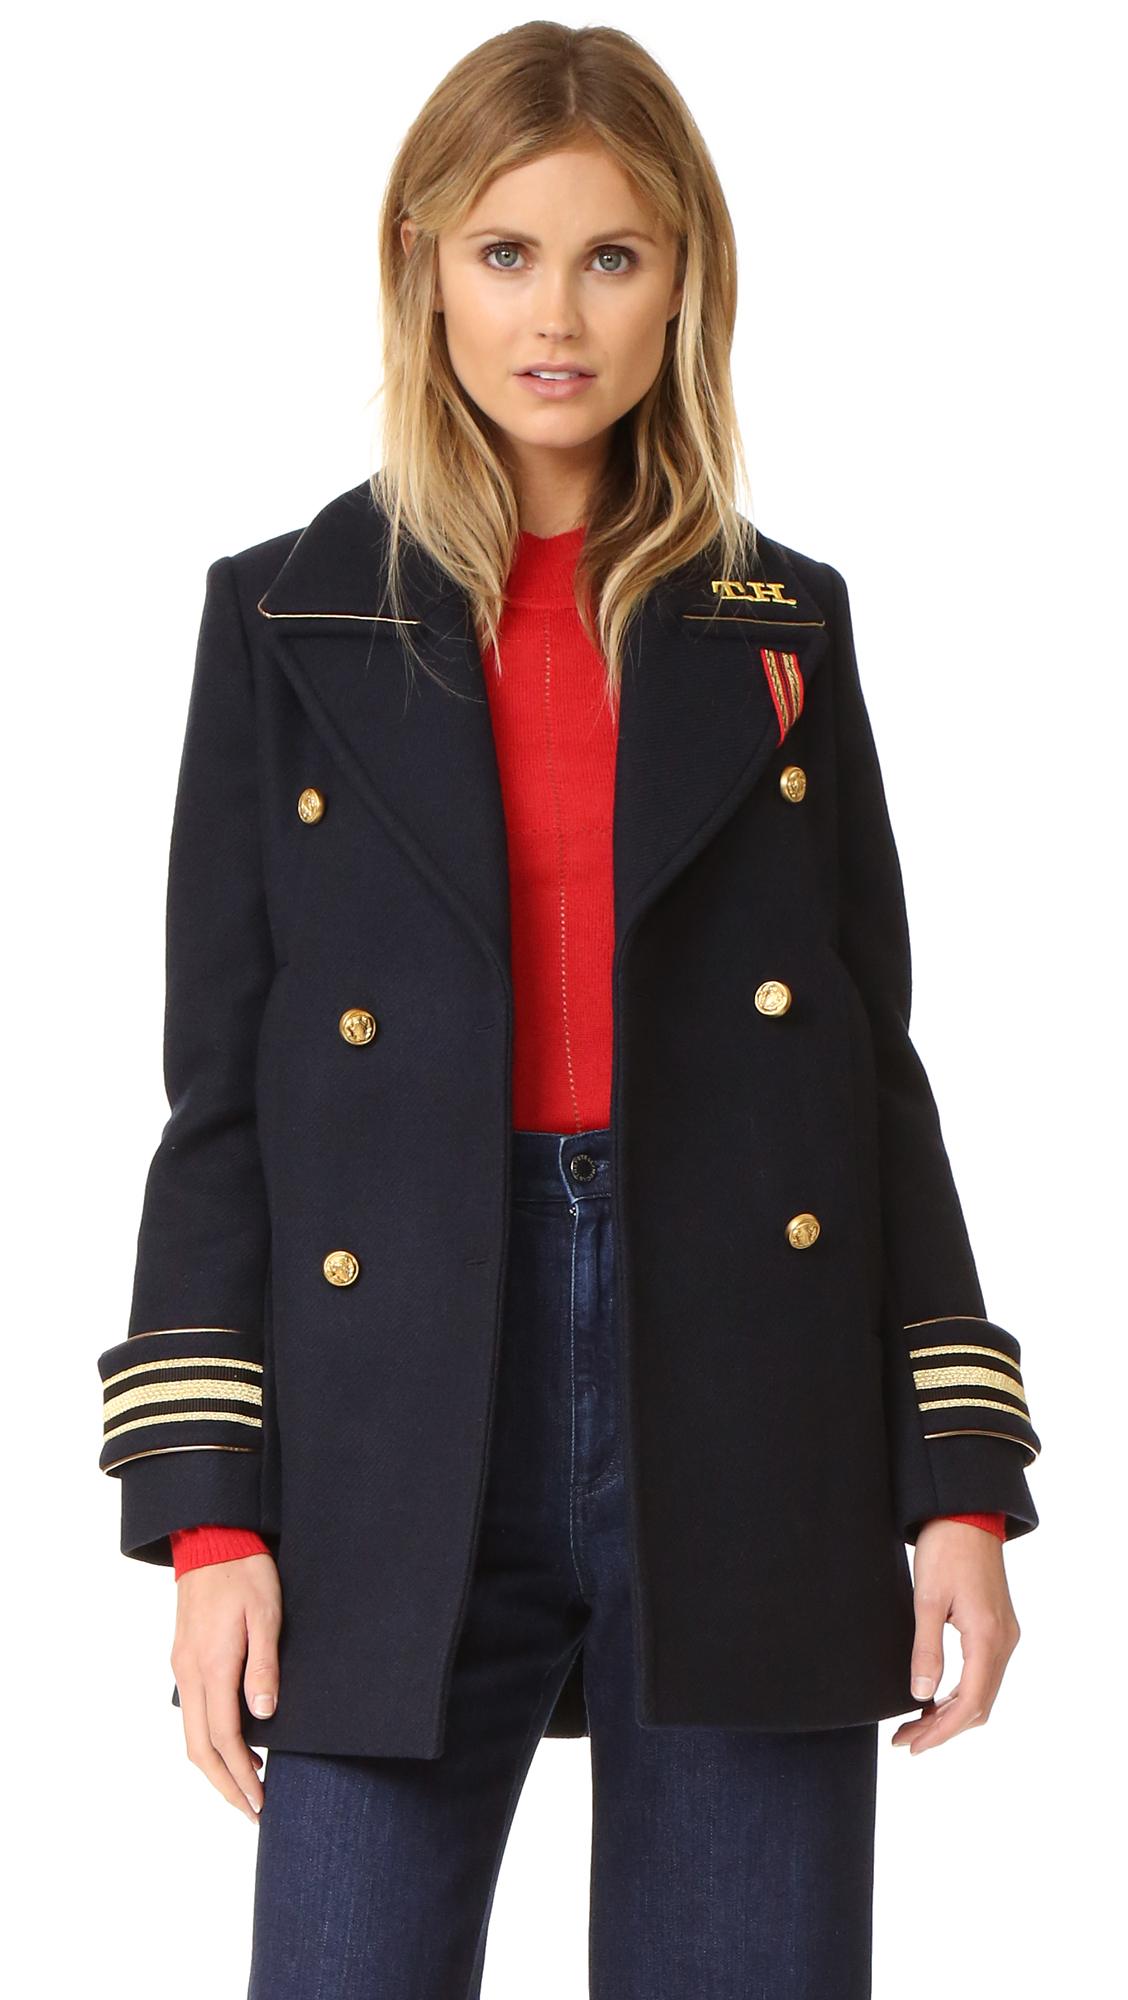 Hilfiger Collection Military Coat - Navy Blazer